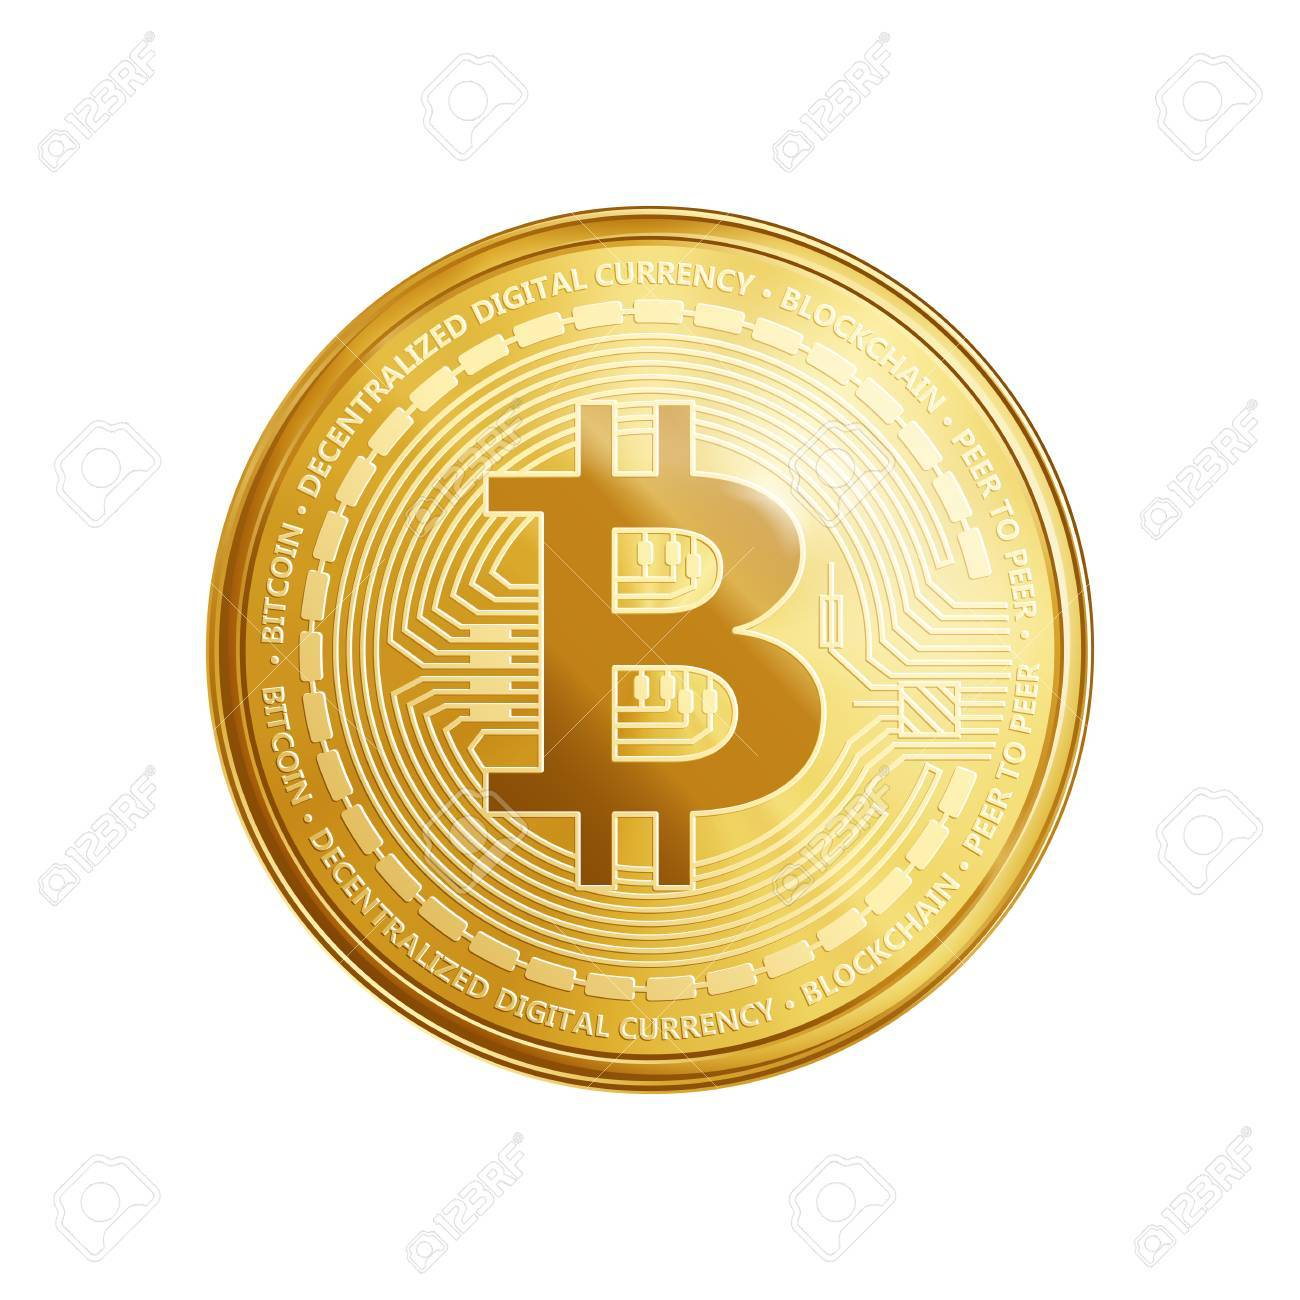 Golden bitcoin coin. Crypto currency golden coin bitcoin symbol isolated on white background. Realistic vector illustration. - 86138989